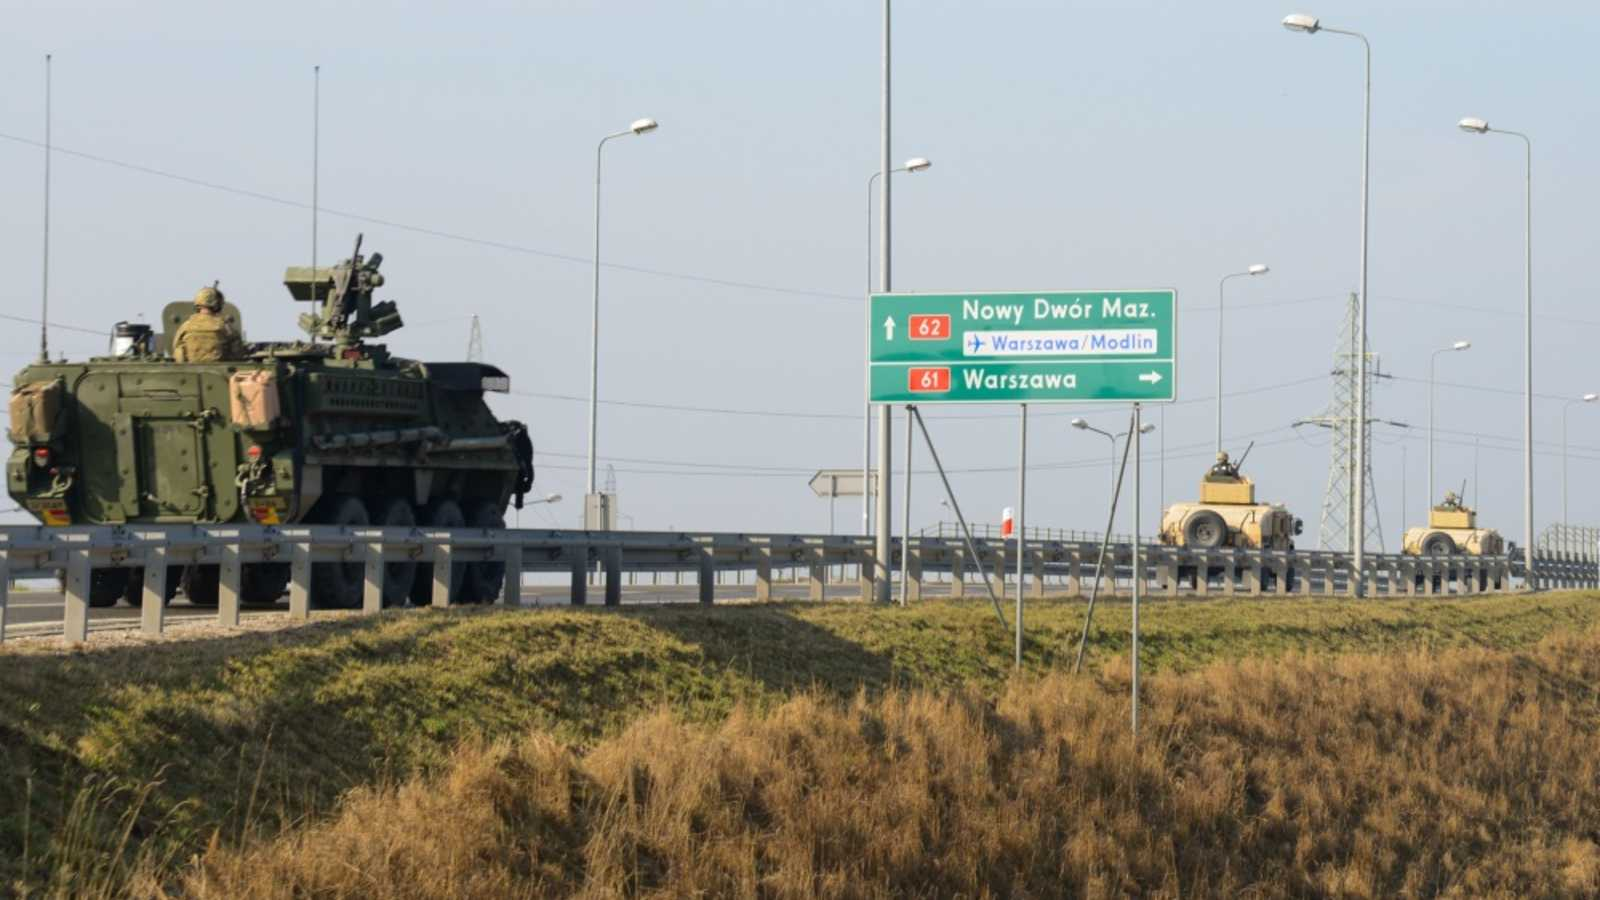 U.S. Army Stryker armored vehicles assigned to Iron Troop, 3rd Squadron, 2nd Cavalry Regiment, travel through the Poland country during the Dragoon Ride, March 27, 2015. The Dragoon Ride is exercising NATO's freedom of movement and will cover more than 1,800 kilometers from Estonia to Vilseck, Germany, home of 3rd Squadron, 2nd Cavalry Regiment, in support of Atlantic Resolve. (U.S. Army photo by Pfc. Nathanael Mercado / Released)